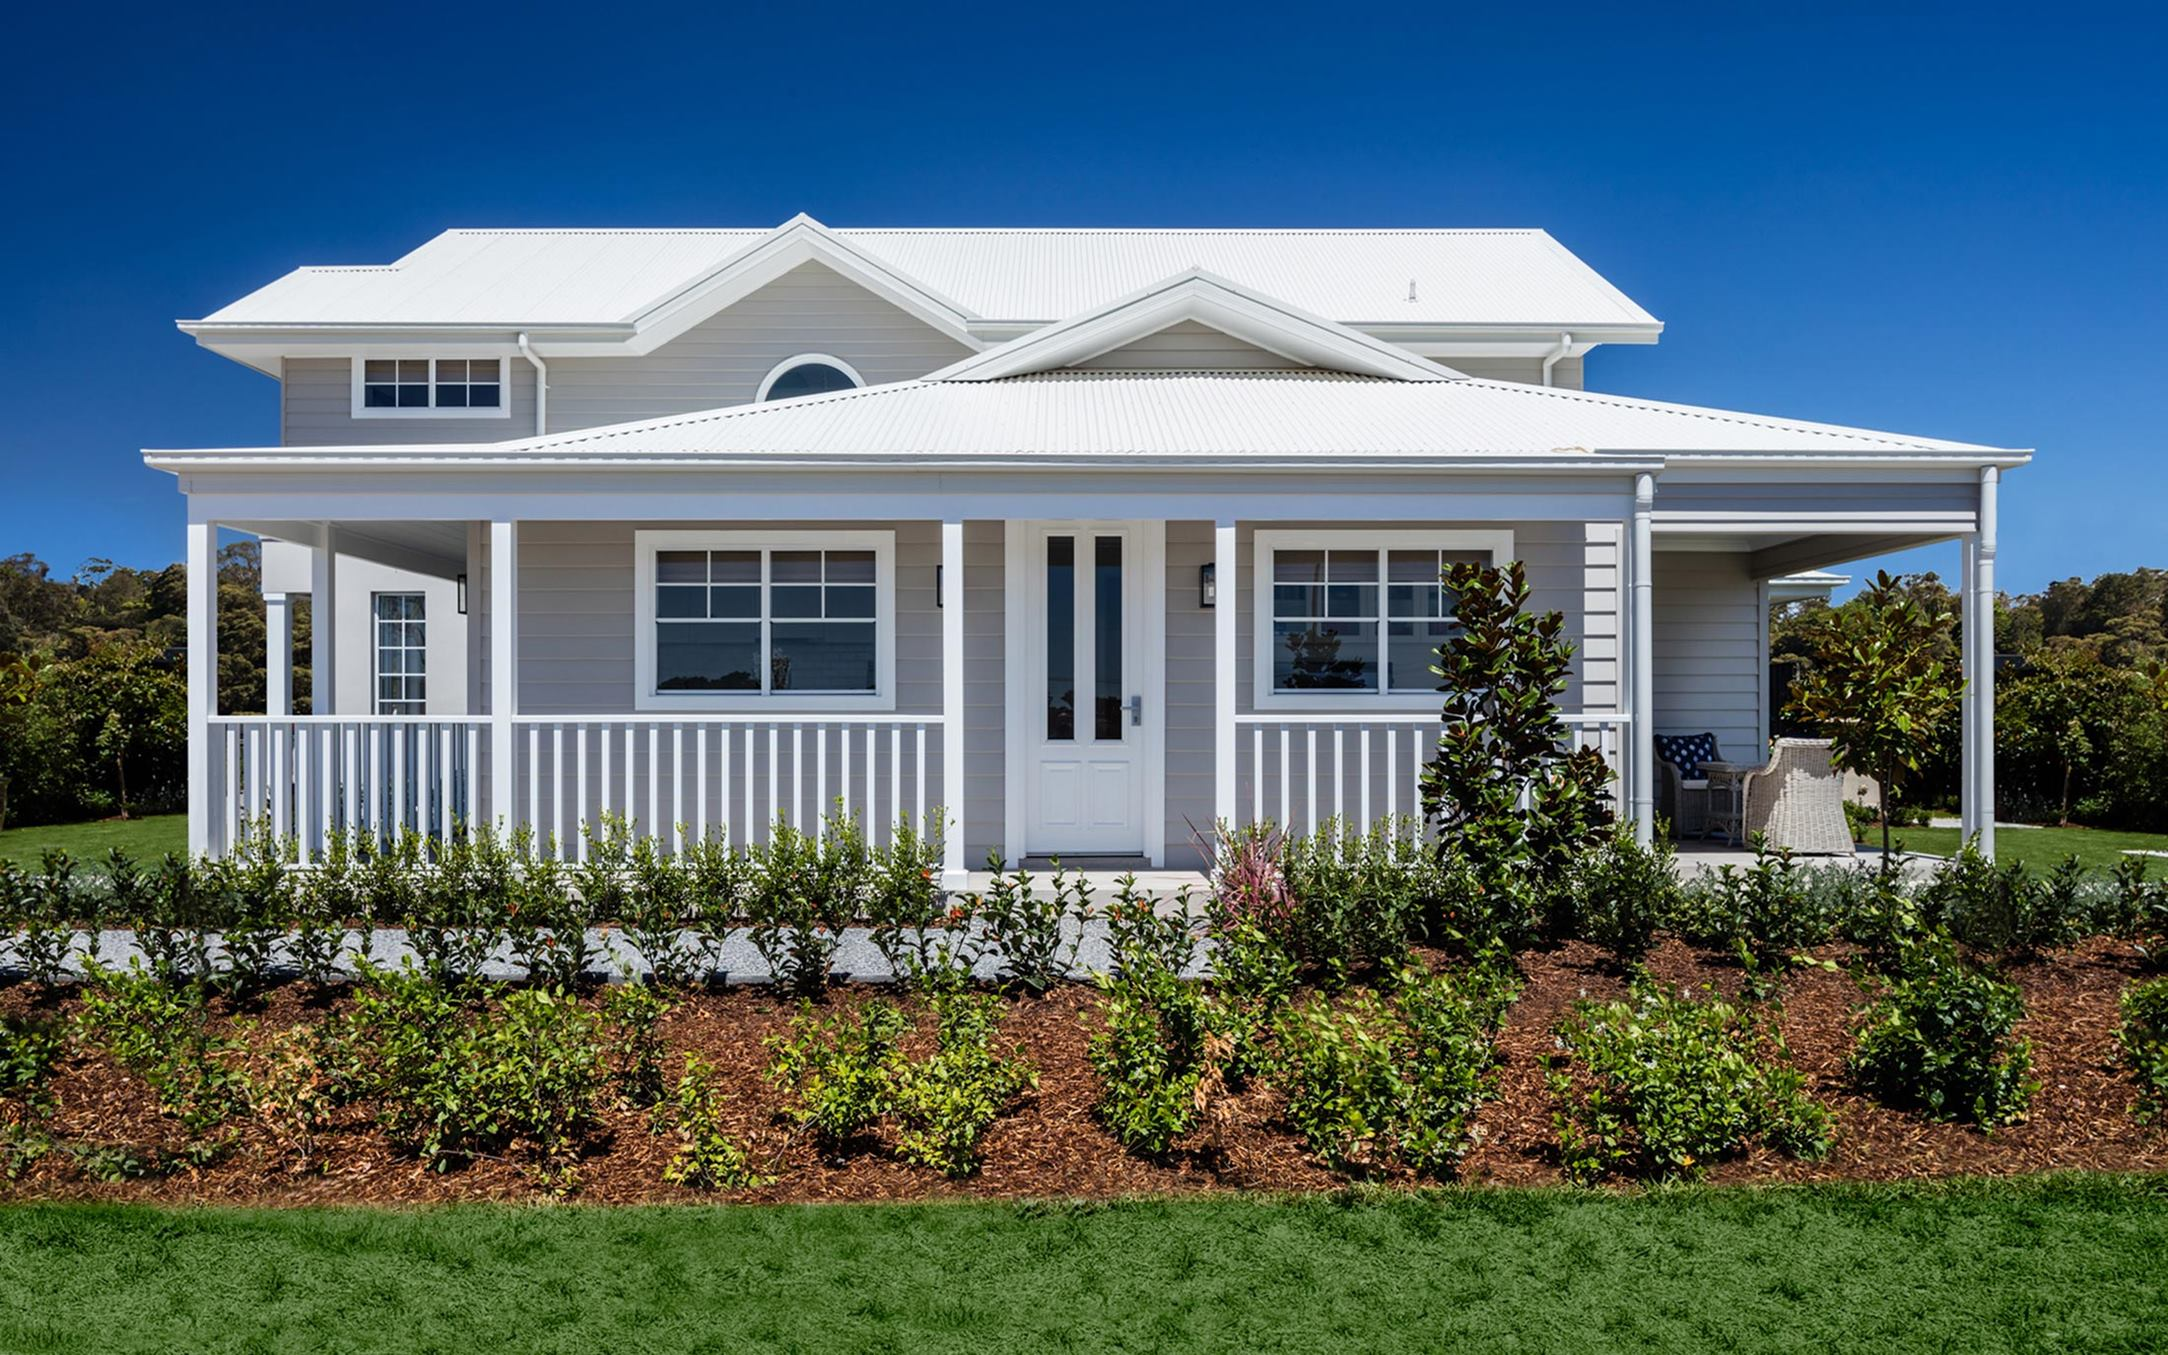 What Do We Mean By Hamptons Style? How To Bring About The Hamptons Style Renovation?